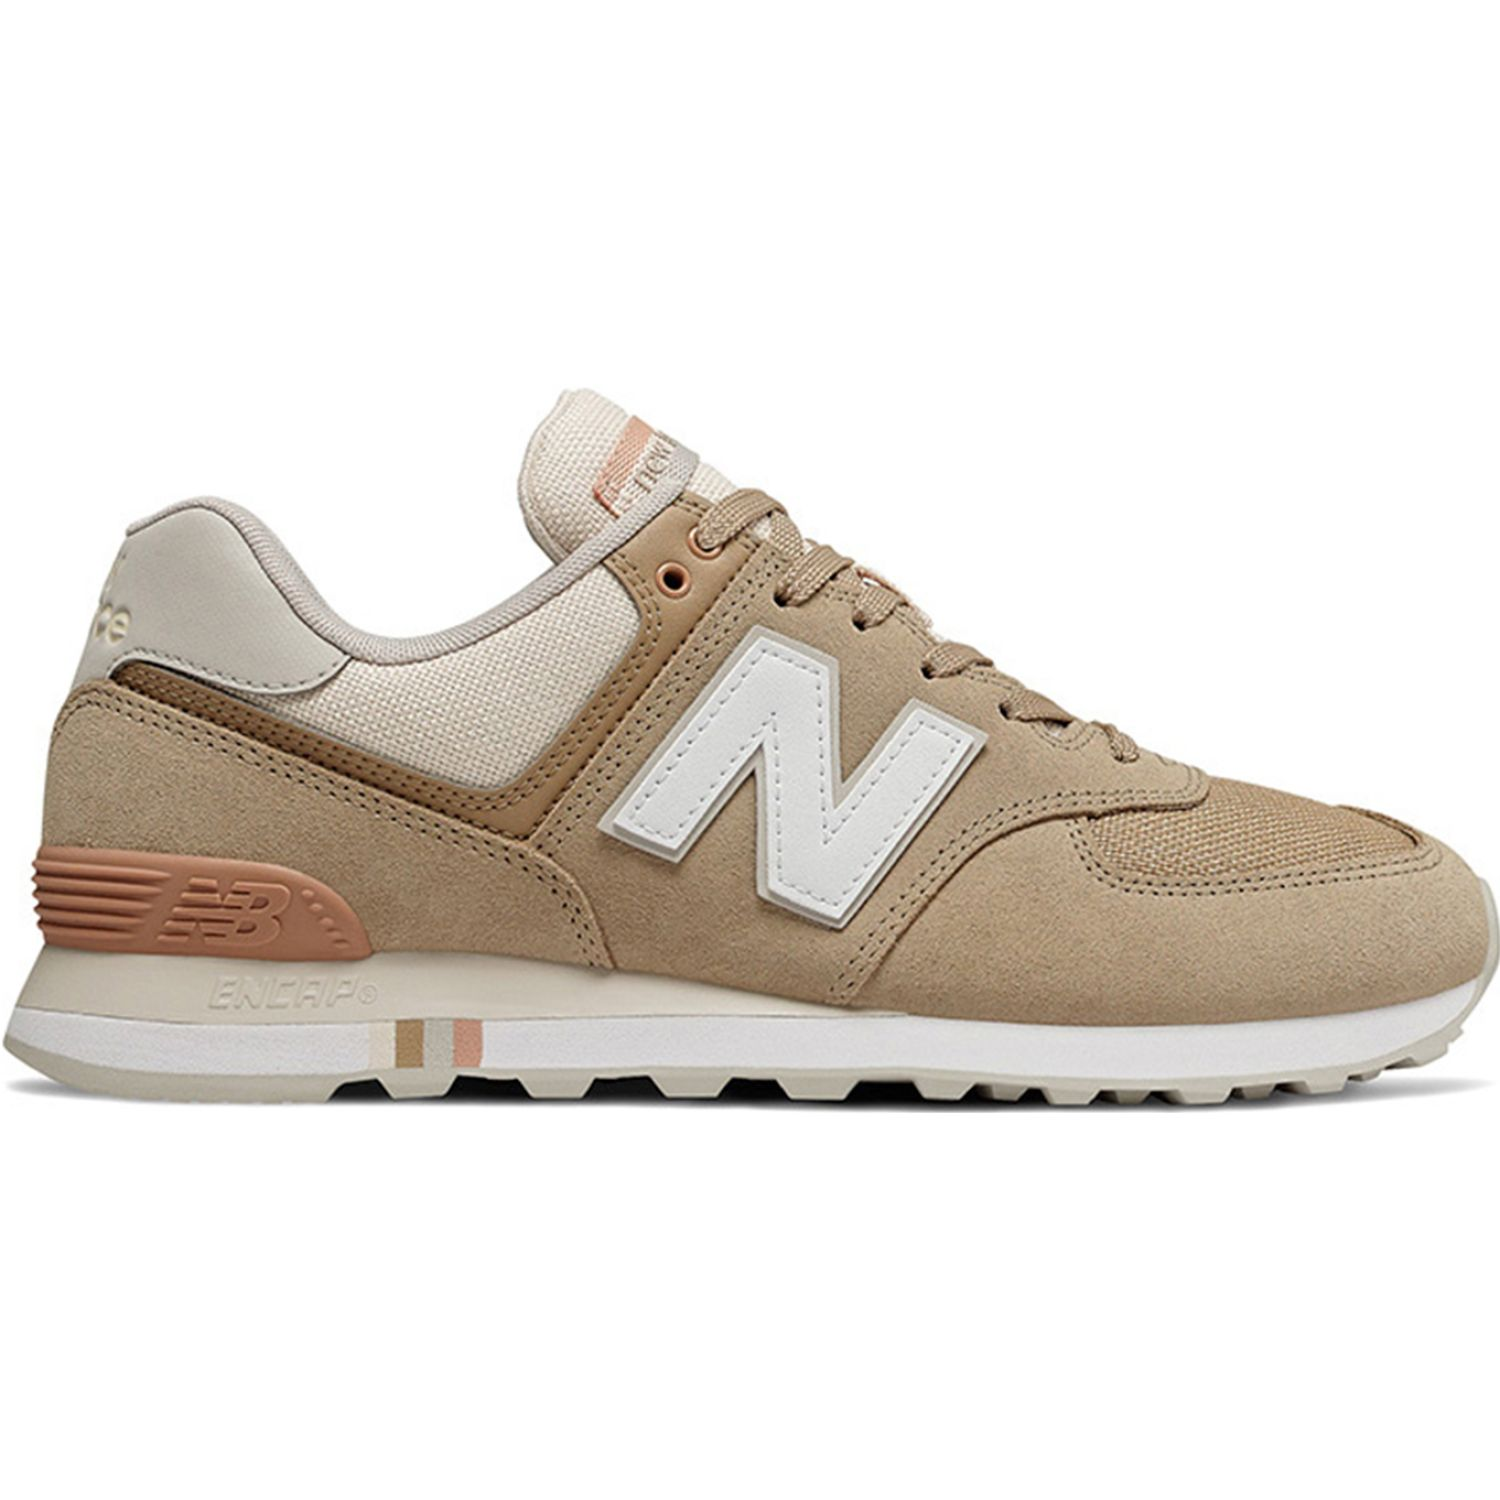 New Balance 574 Camel Walking